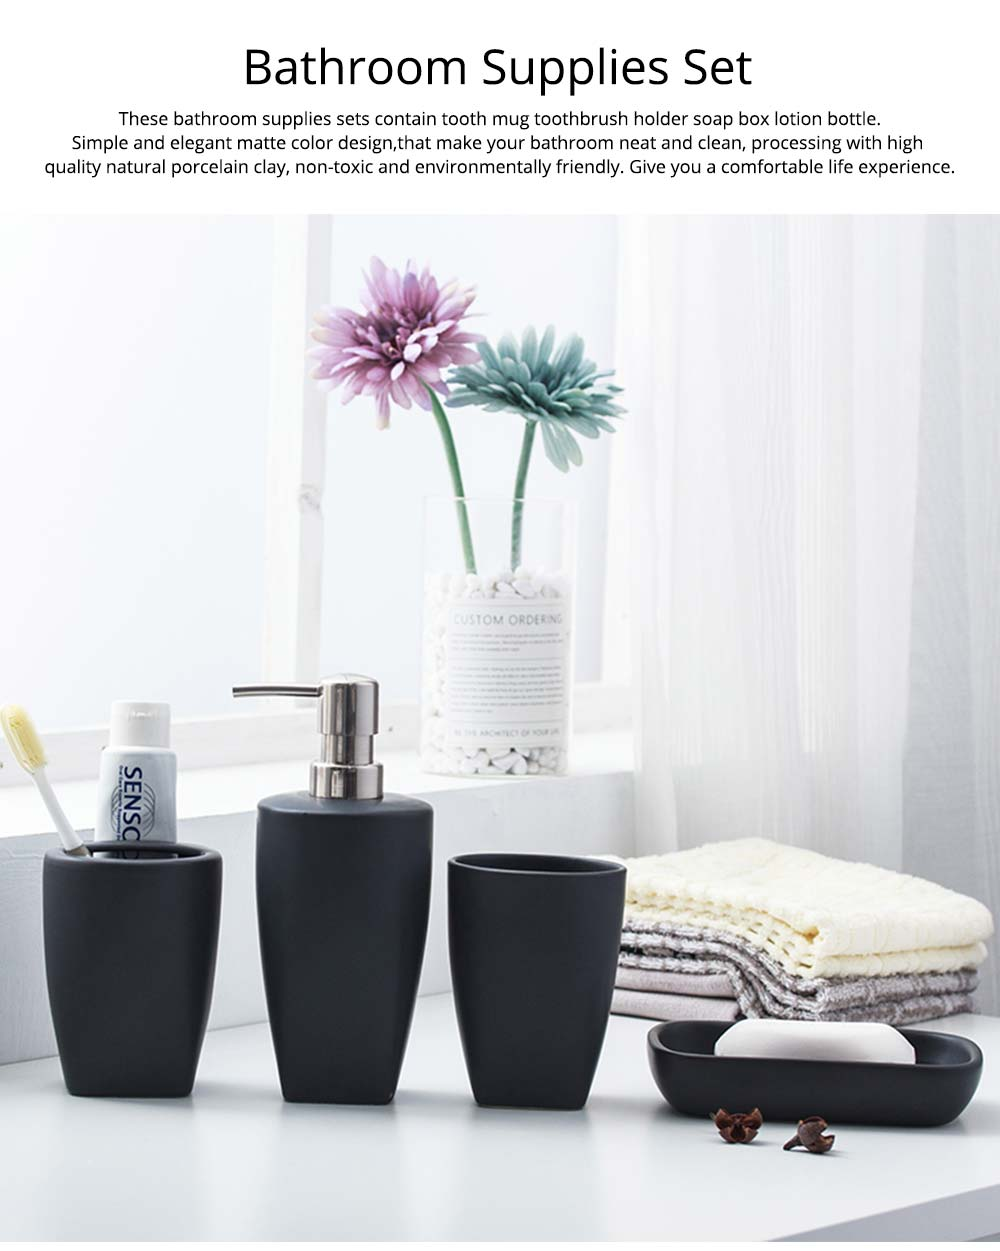 Multi-color Ceramic Bathroom 4 PCS Suits Nordic Minimalist Style Matte Bathroom Supplies Tooth Mug Toothbrush Holder Soap Box Lotion Bottle 0